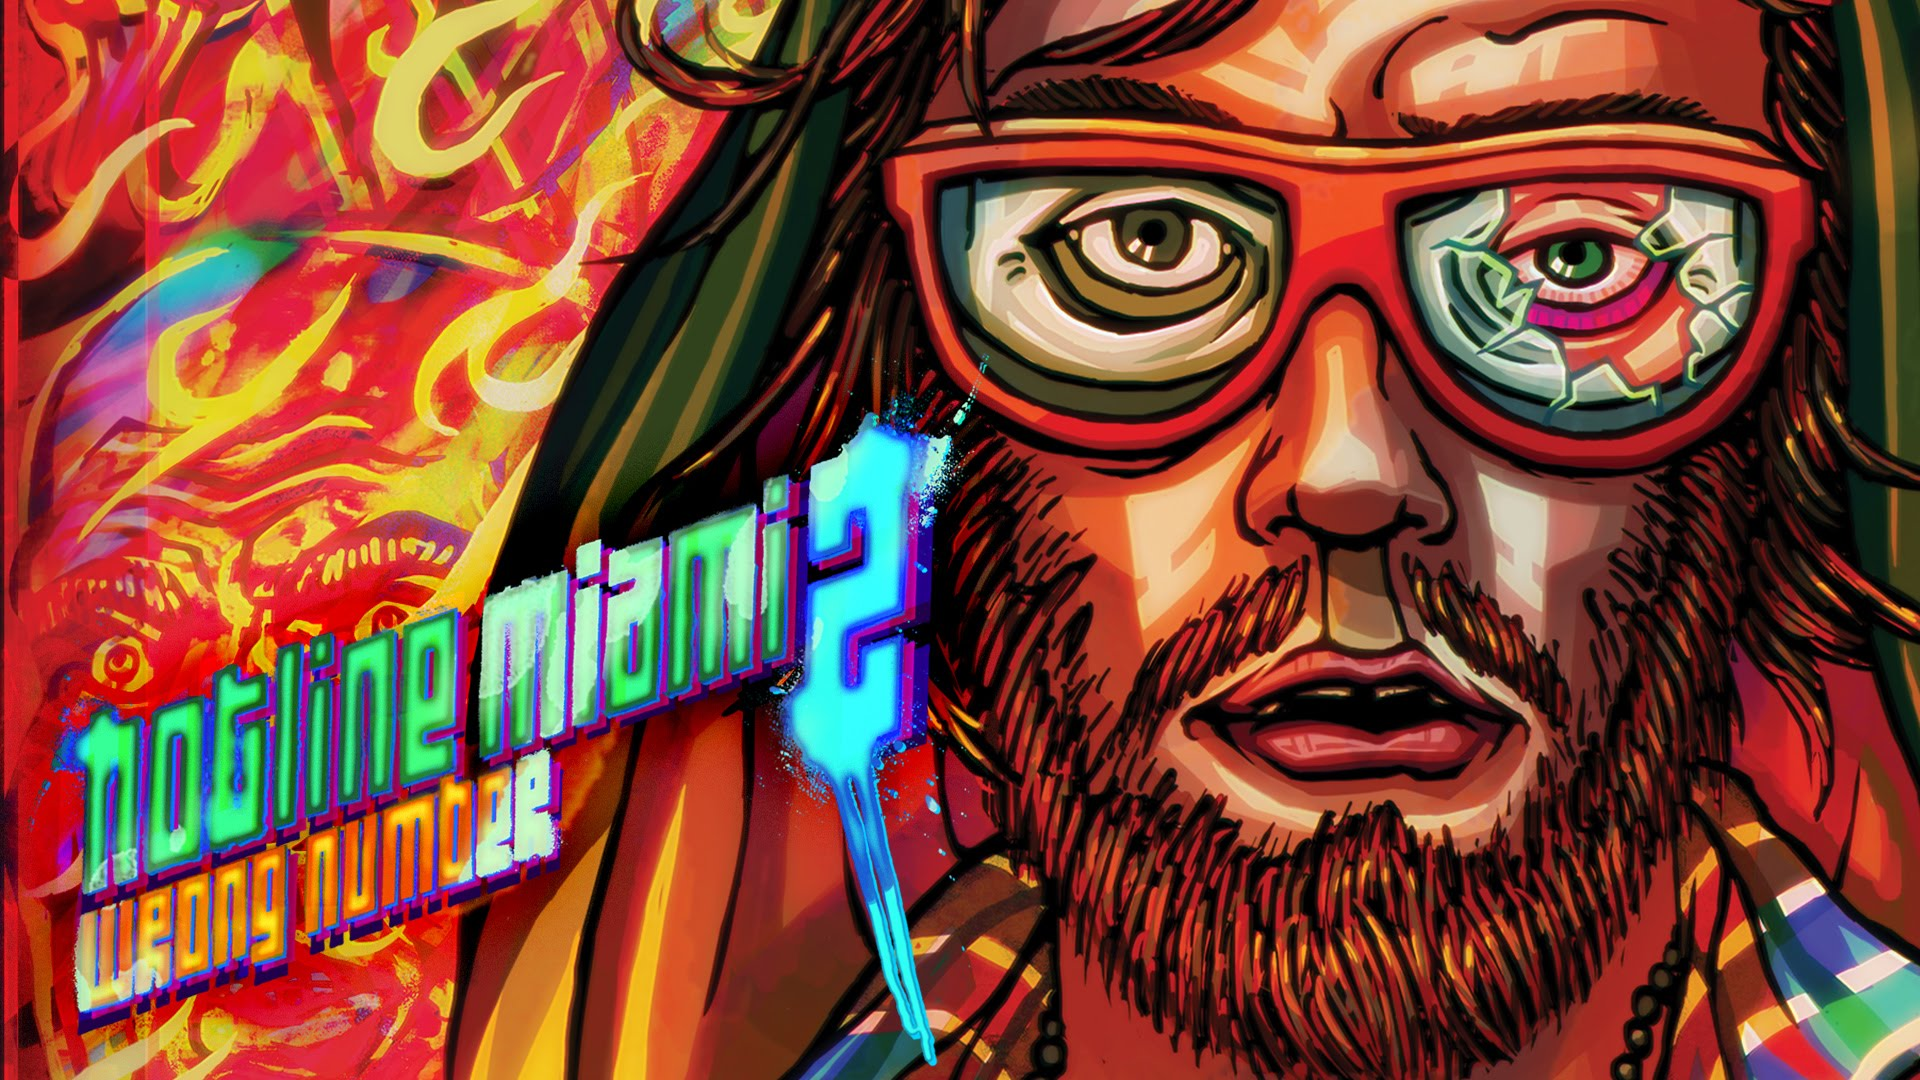 Hotline Miami Wallpaper 1920x1080: Hotline Miami 2: Wrong Number Full HD Wallpaper And